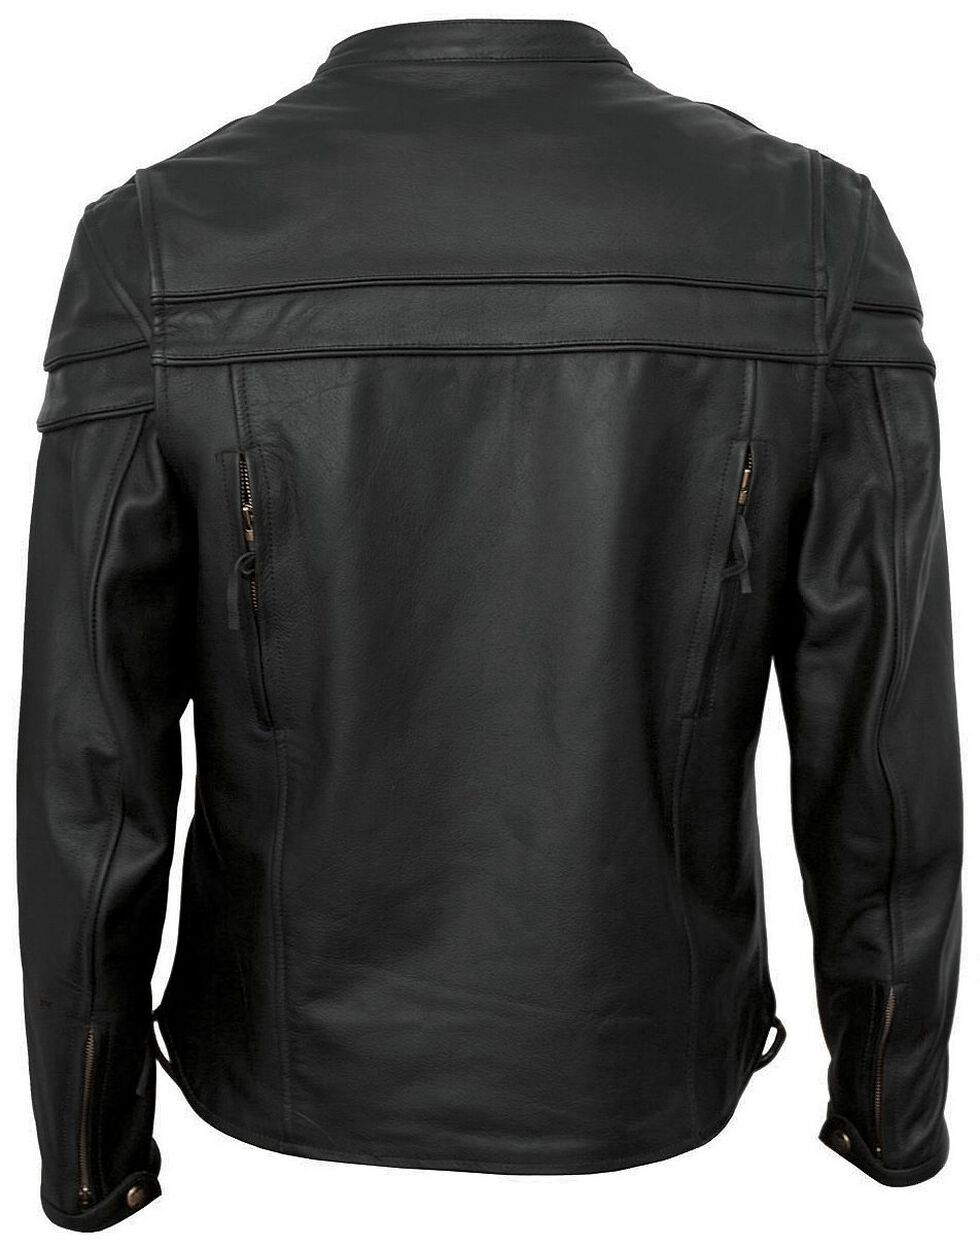 Interstate Leather Scooter Jacket - XL, Black, hi-res